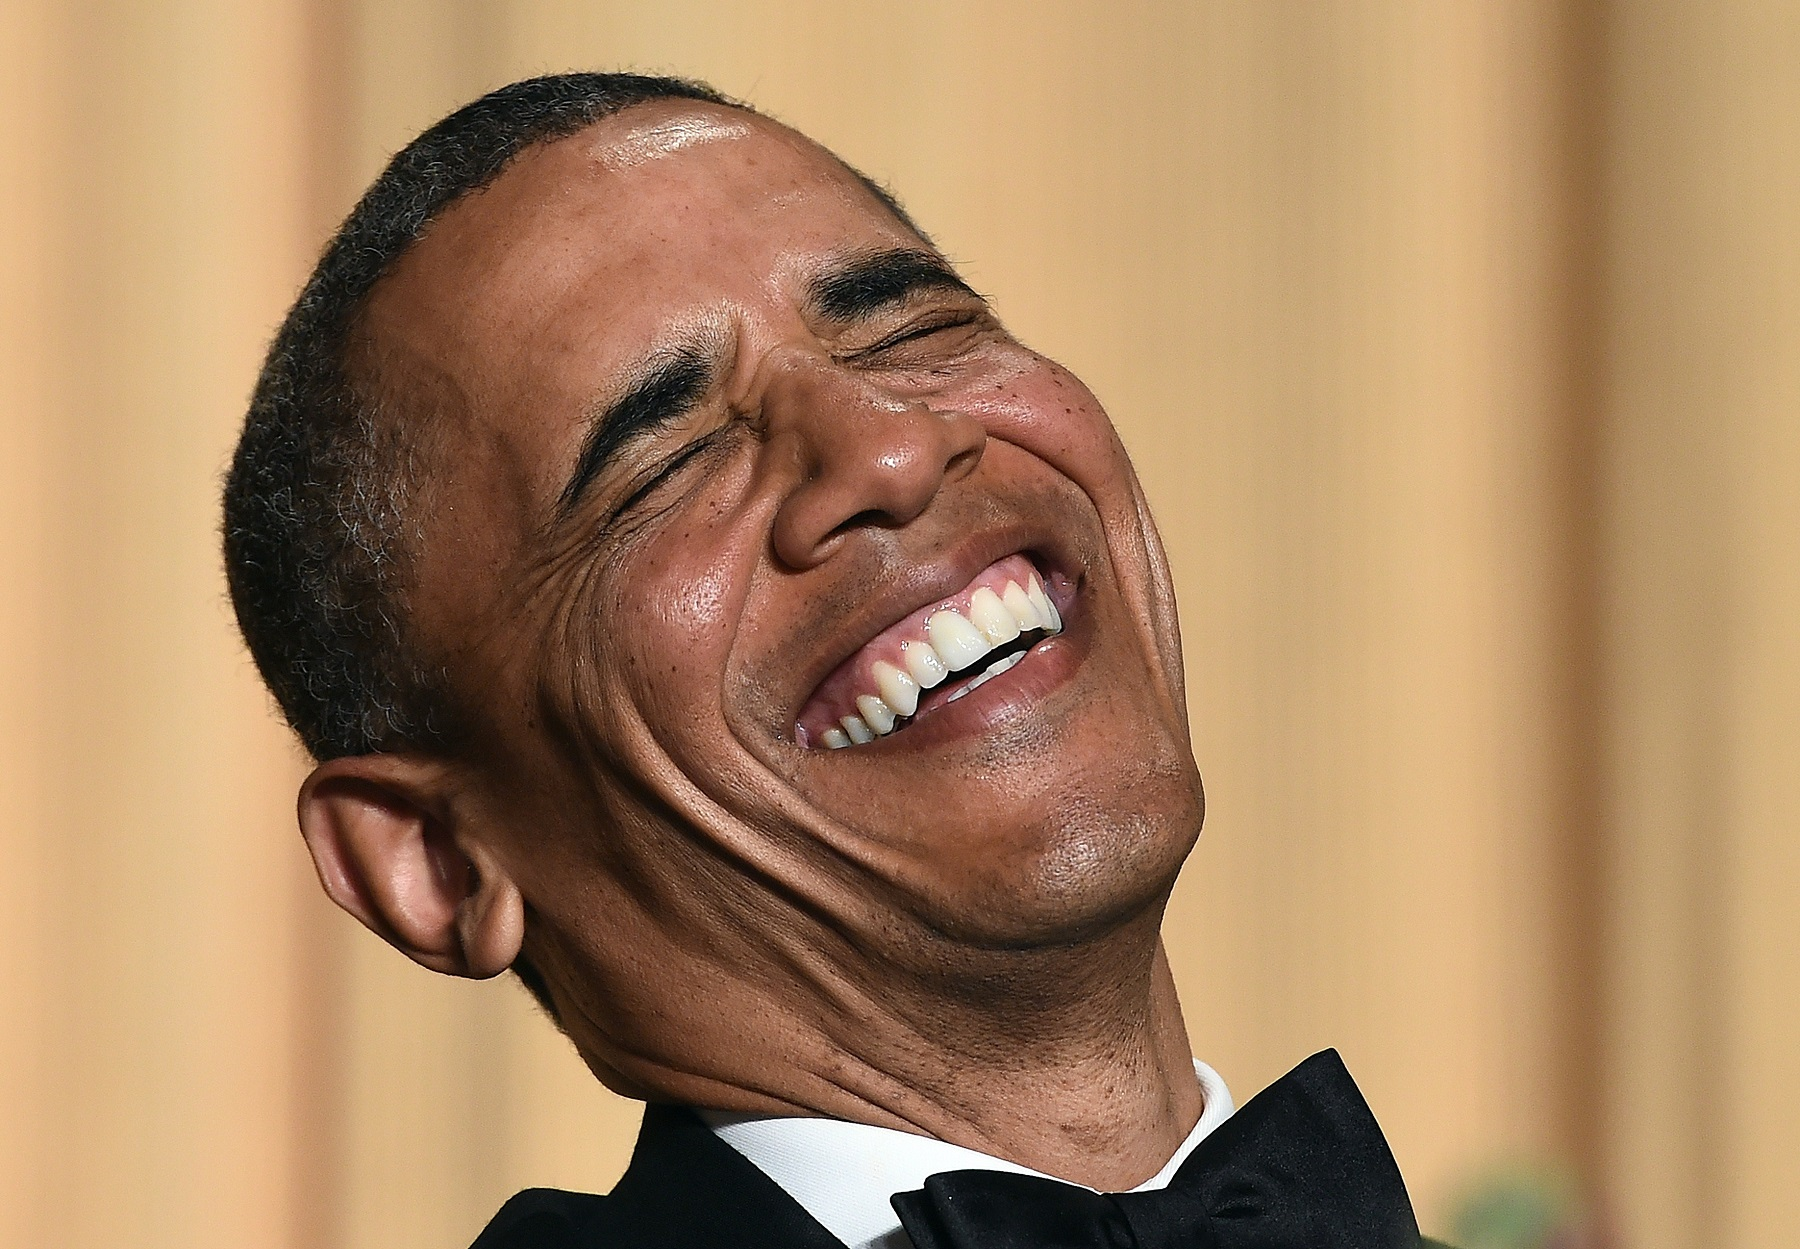 Obama laughing Getty Images/Jewel Samad